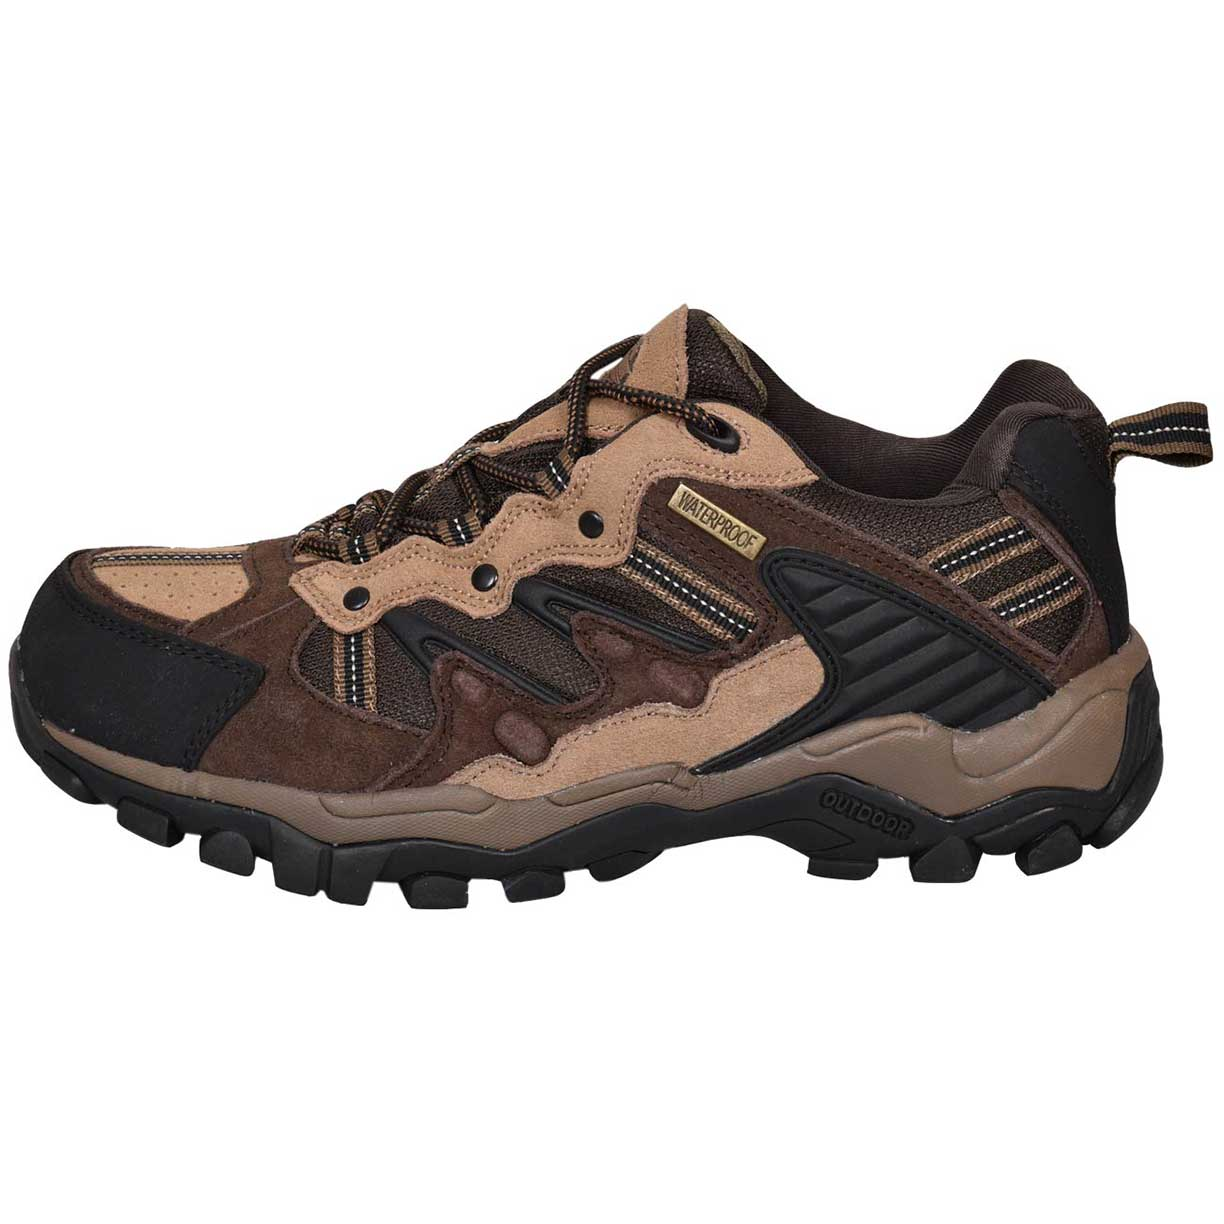 Northwest Hiking Shoe Reliance Brown